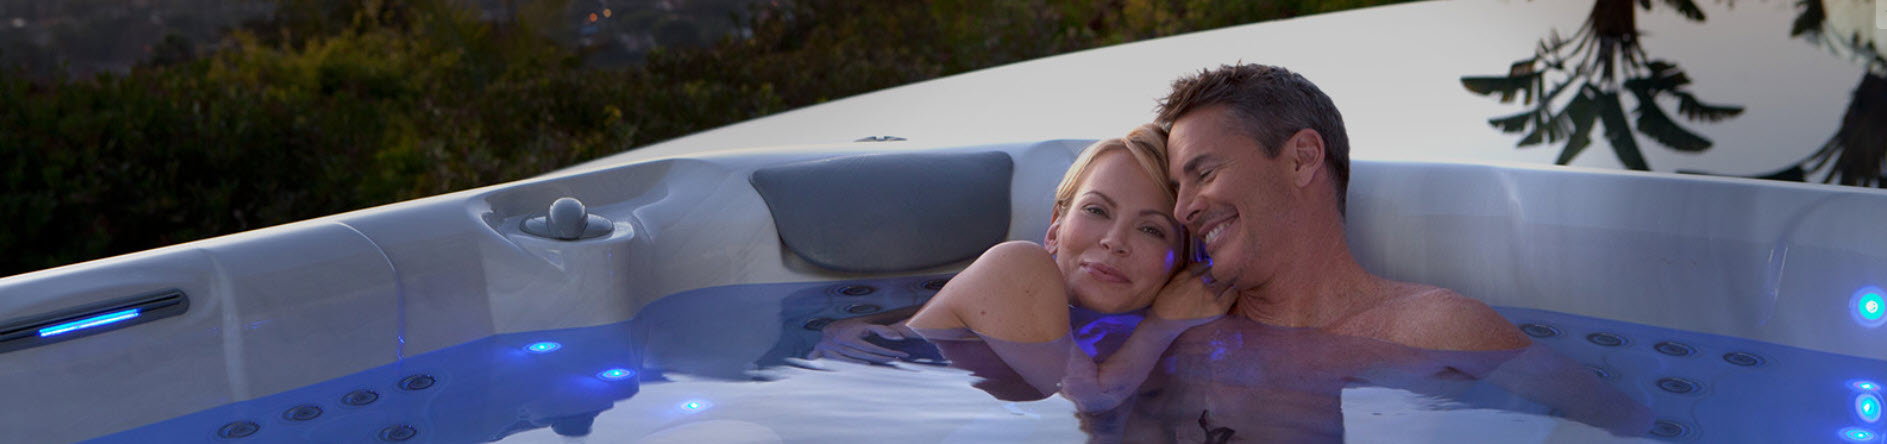 Hot Tubs Sale Iowa – August is Romance Awareness Month